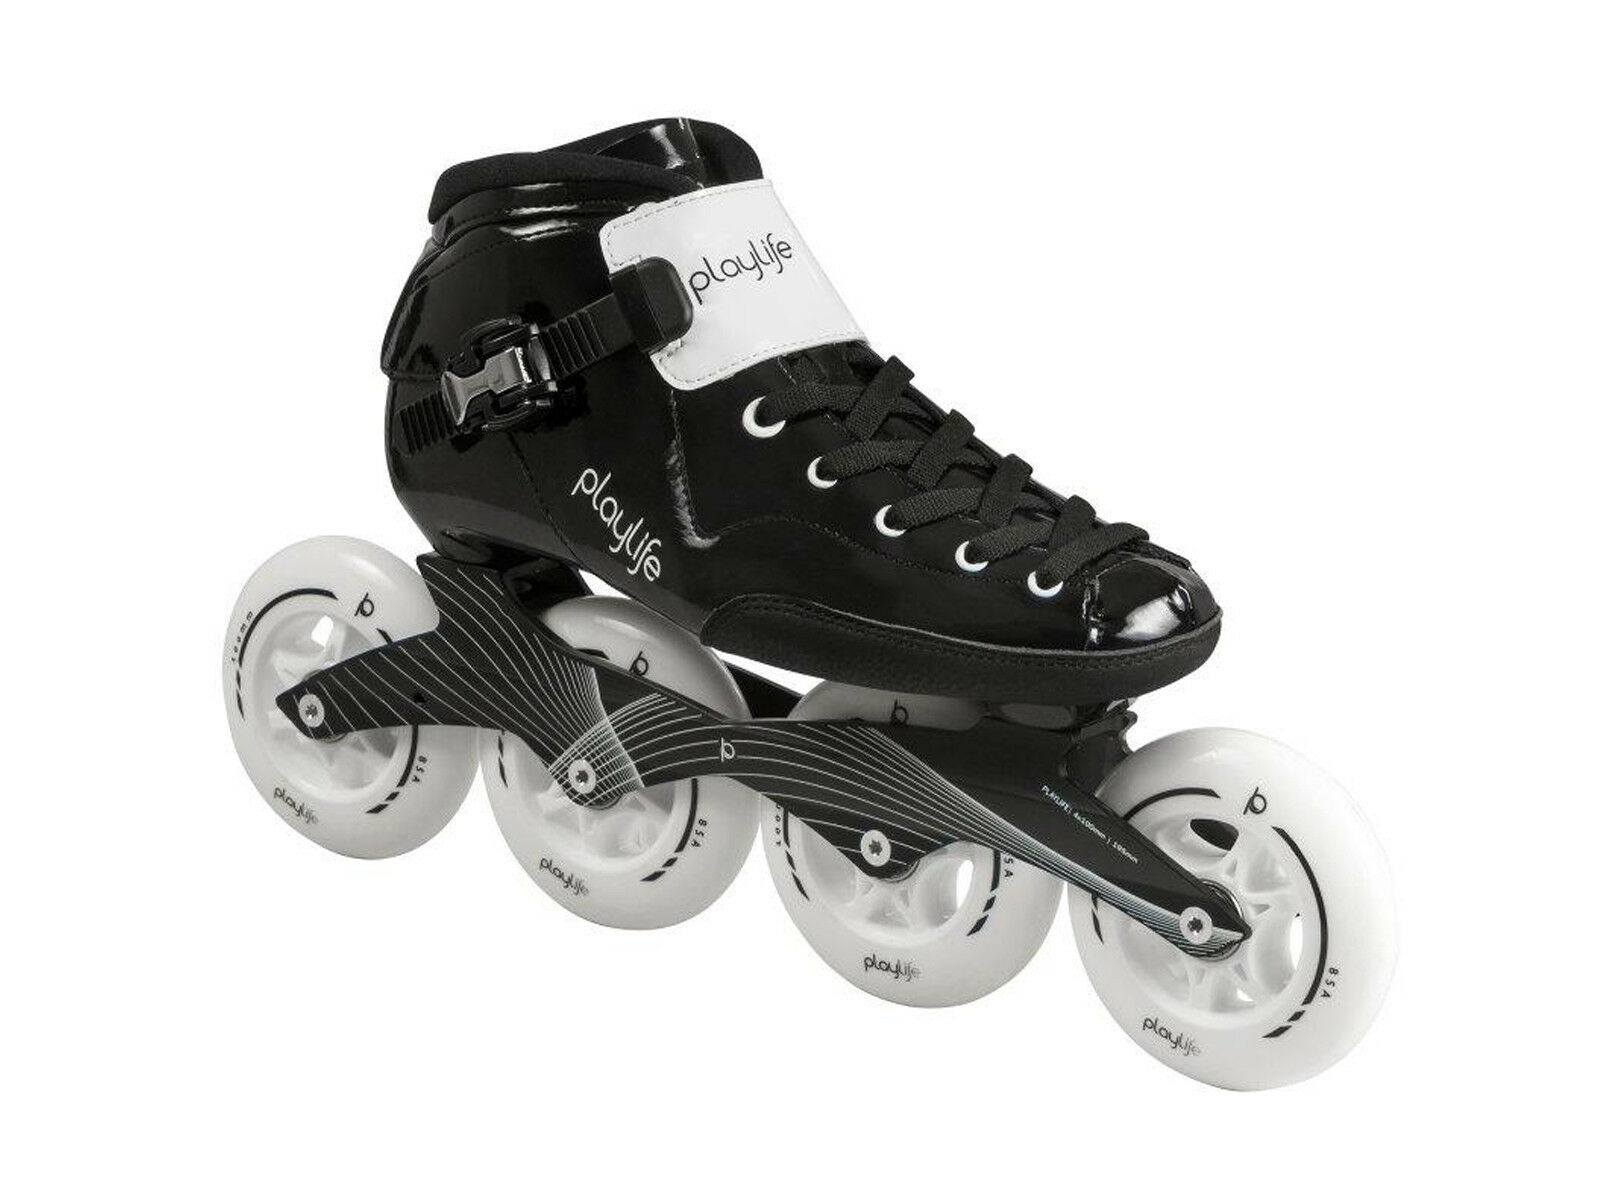 Powerslide Playlife Performance Inline  Speed S   free and fast delivery available